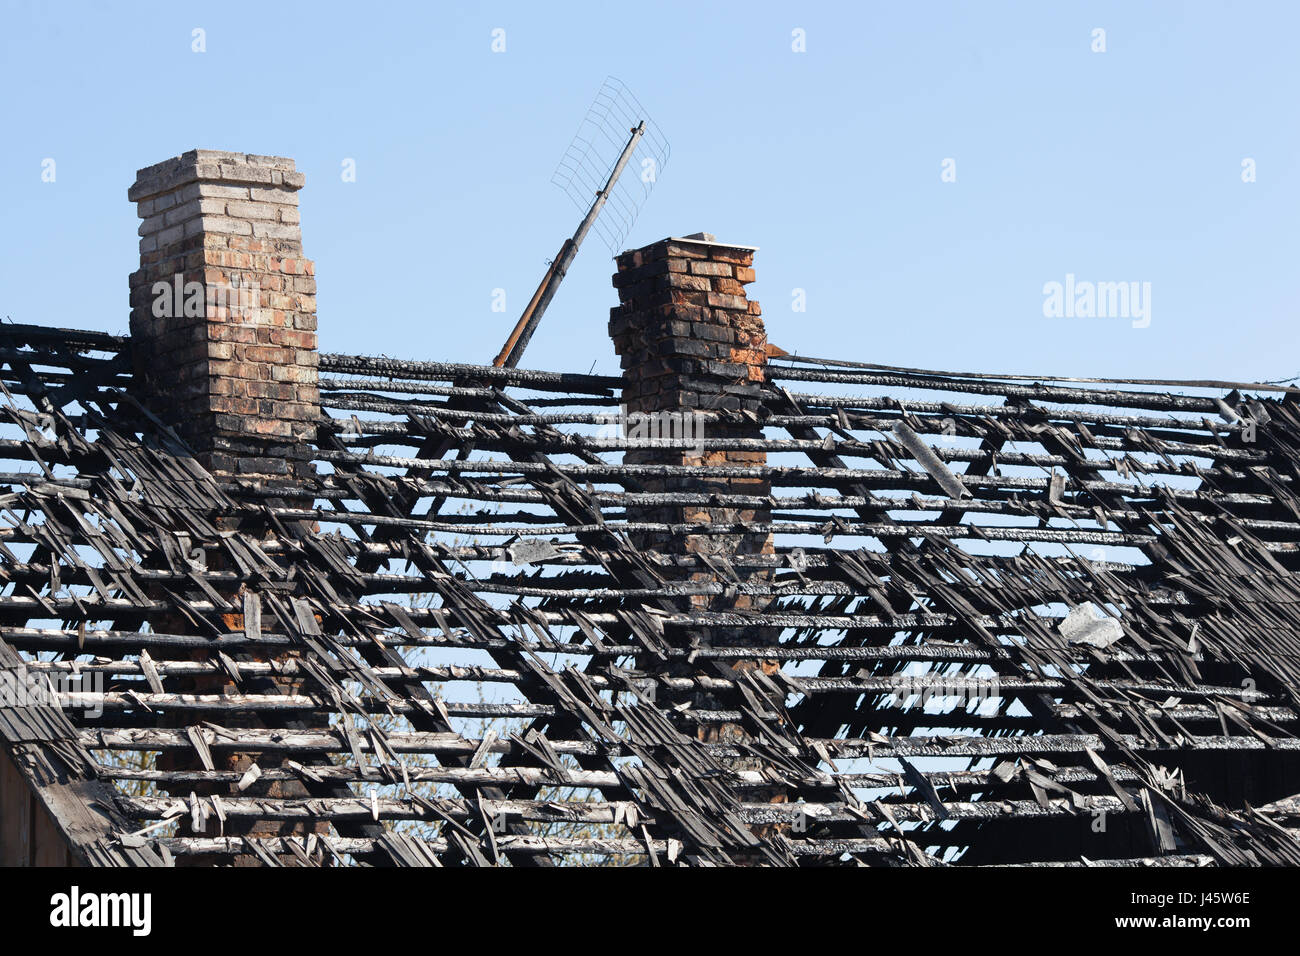 The charred roof and the surviving chimney. - Stock Image